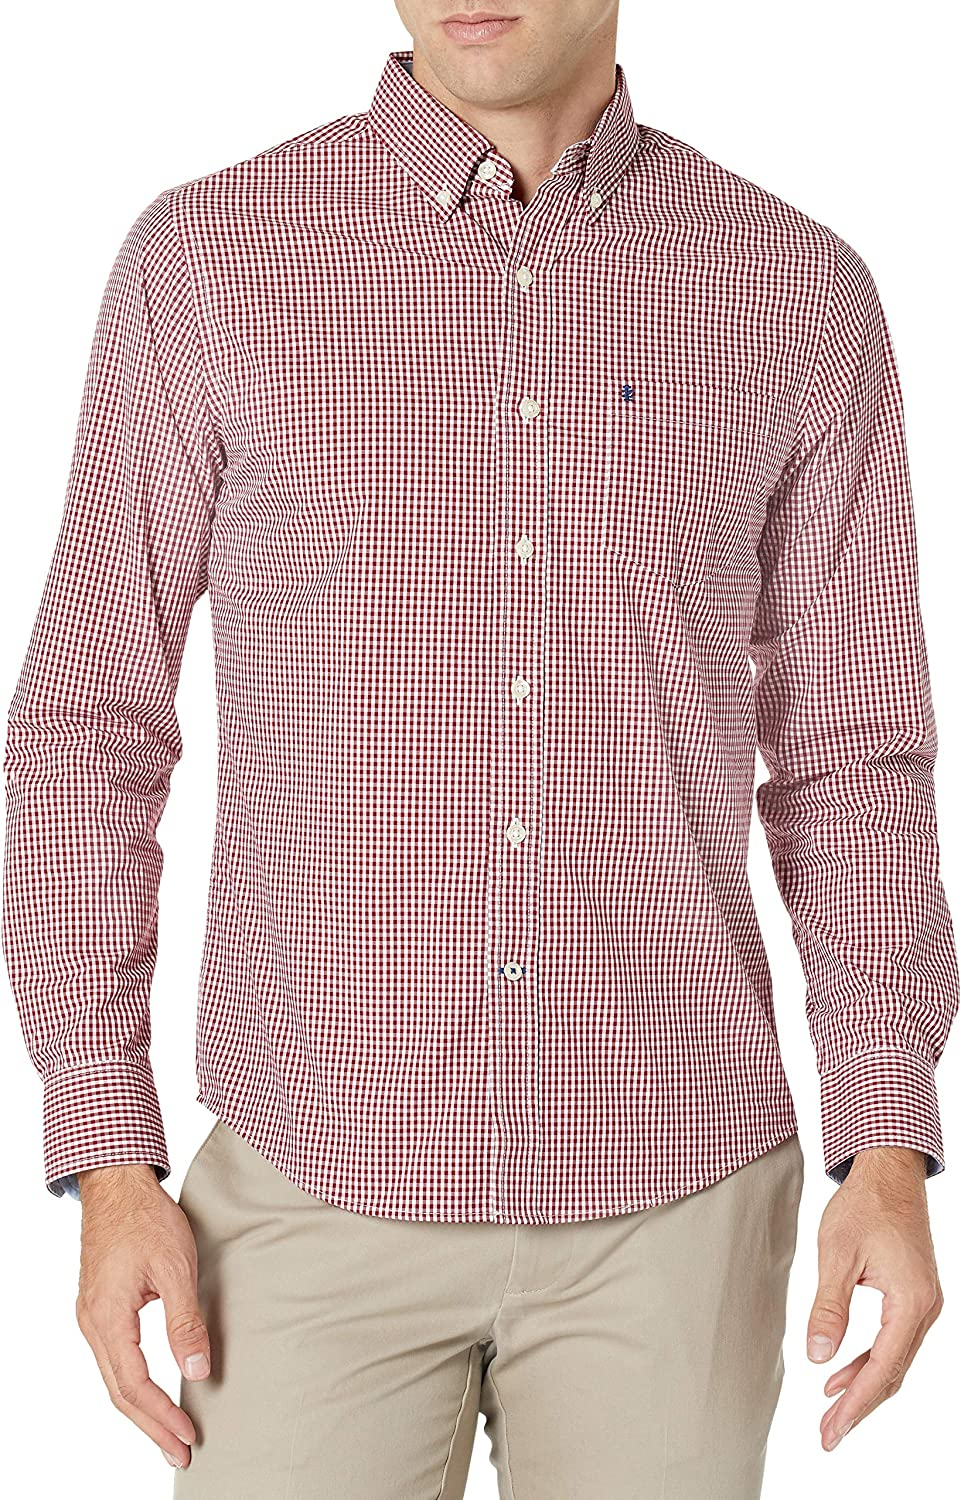 Ranking integrated 1st place IZOD Men's Slim Fit Button Max 42% OFF Long Sleeve Down Stretch Performance